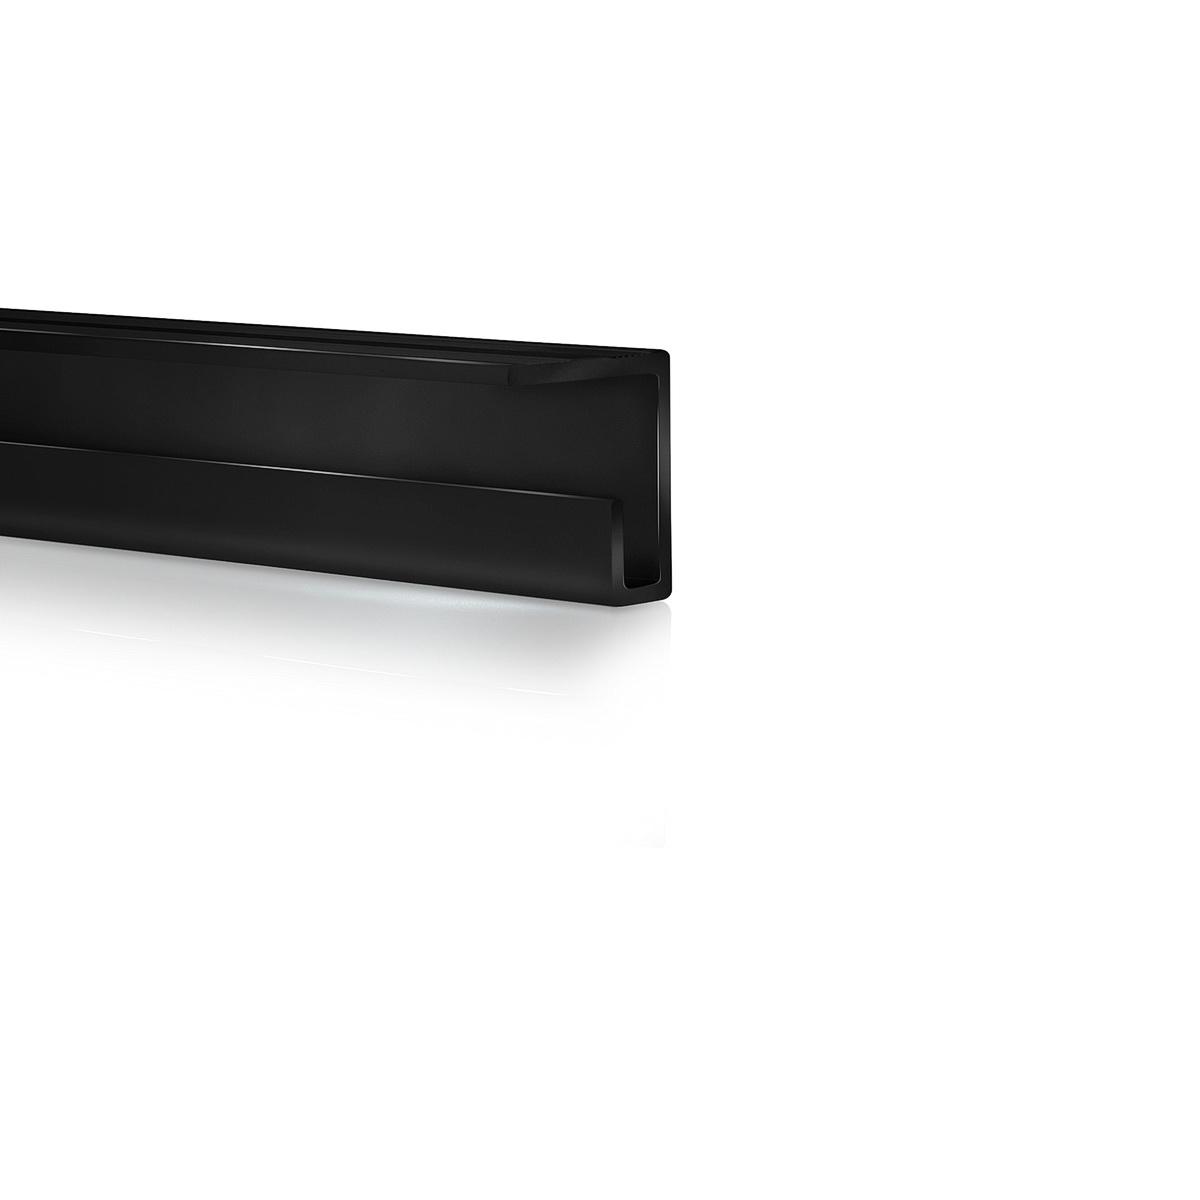 Ceiling Rail System, Black Anodized Finish